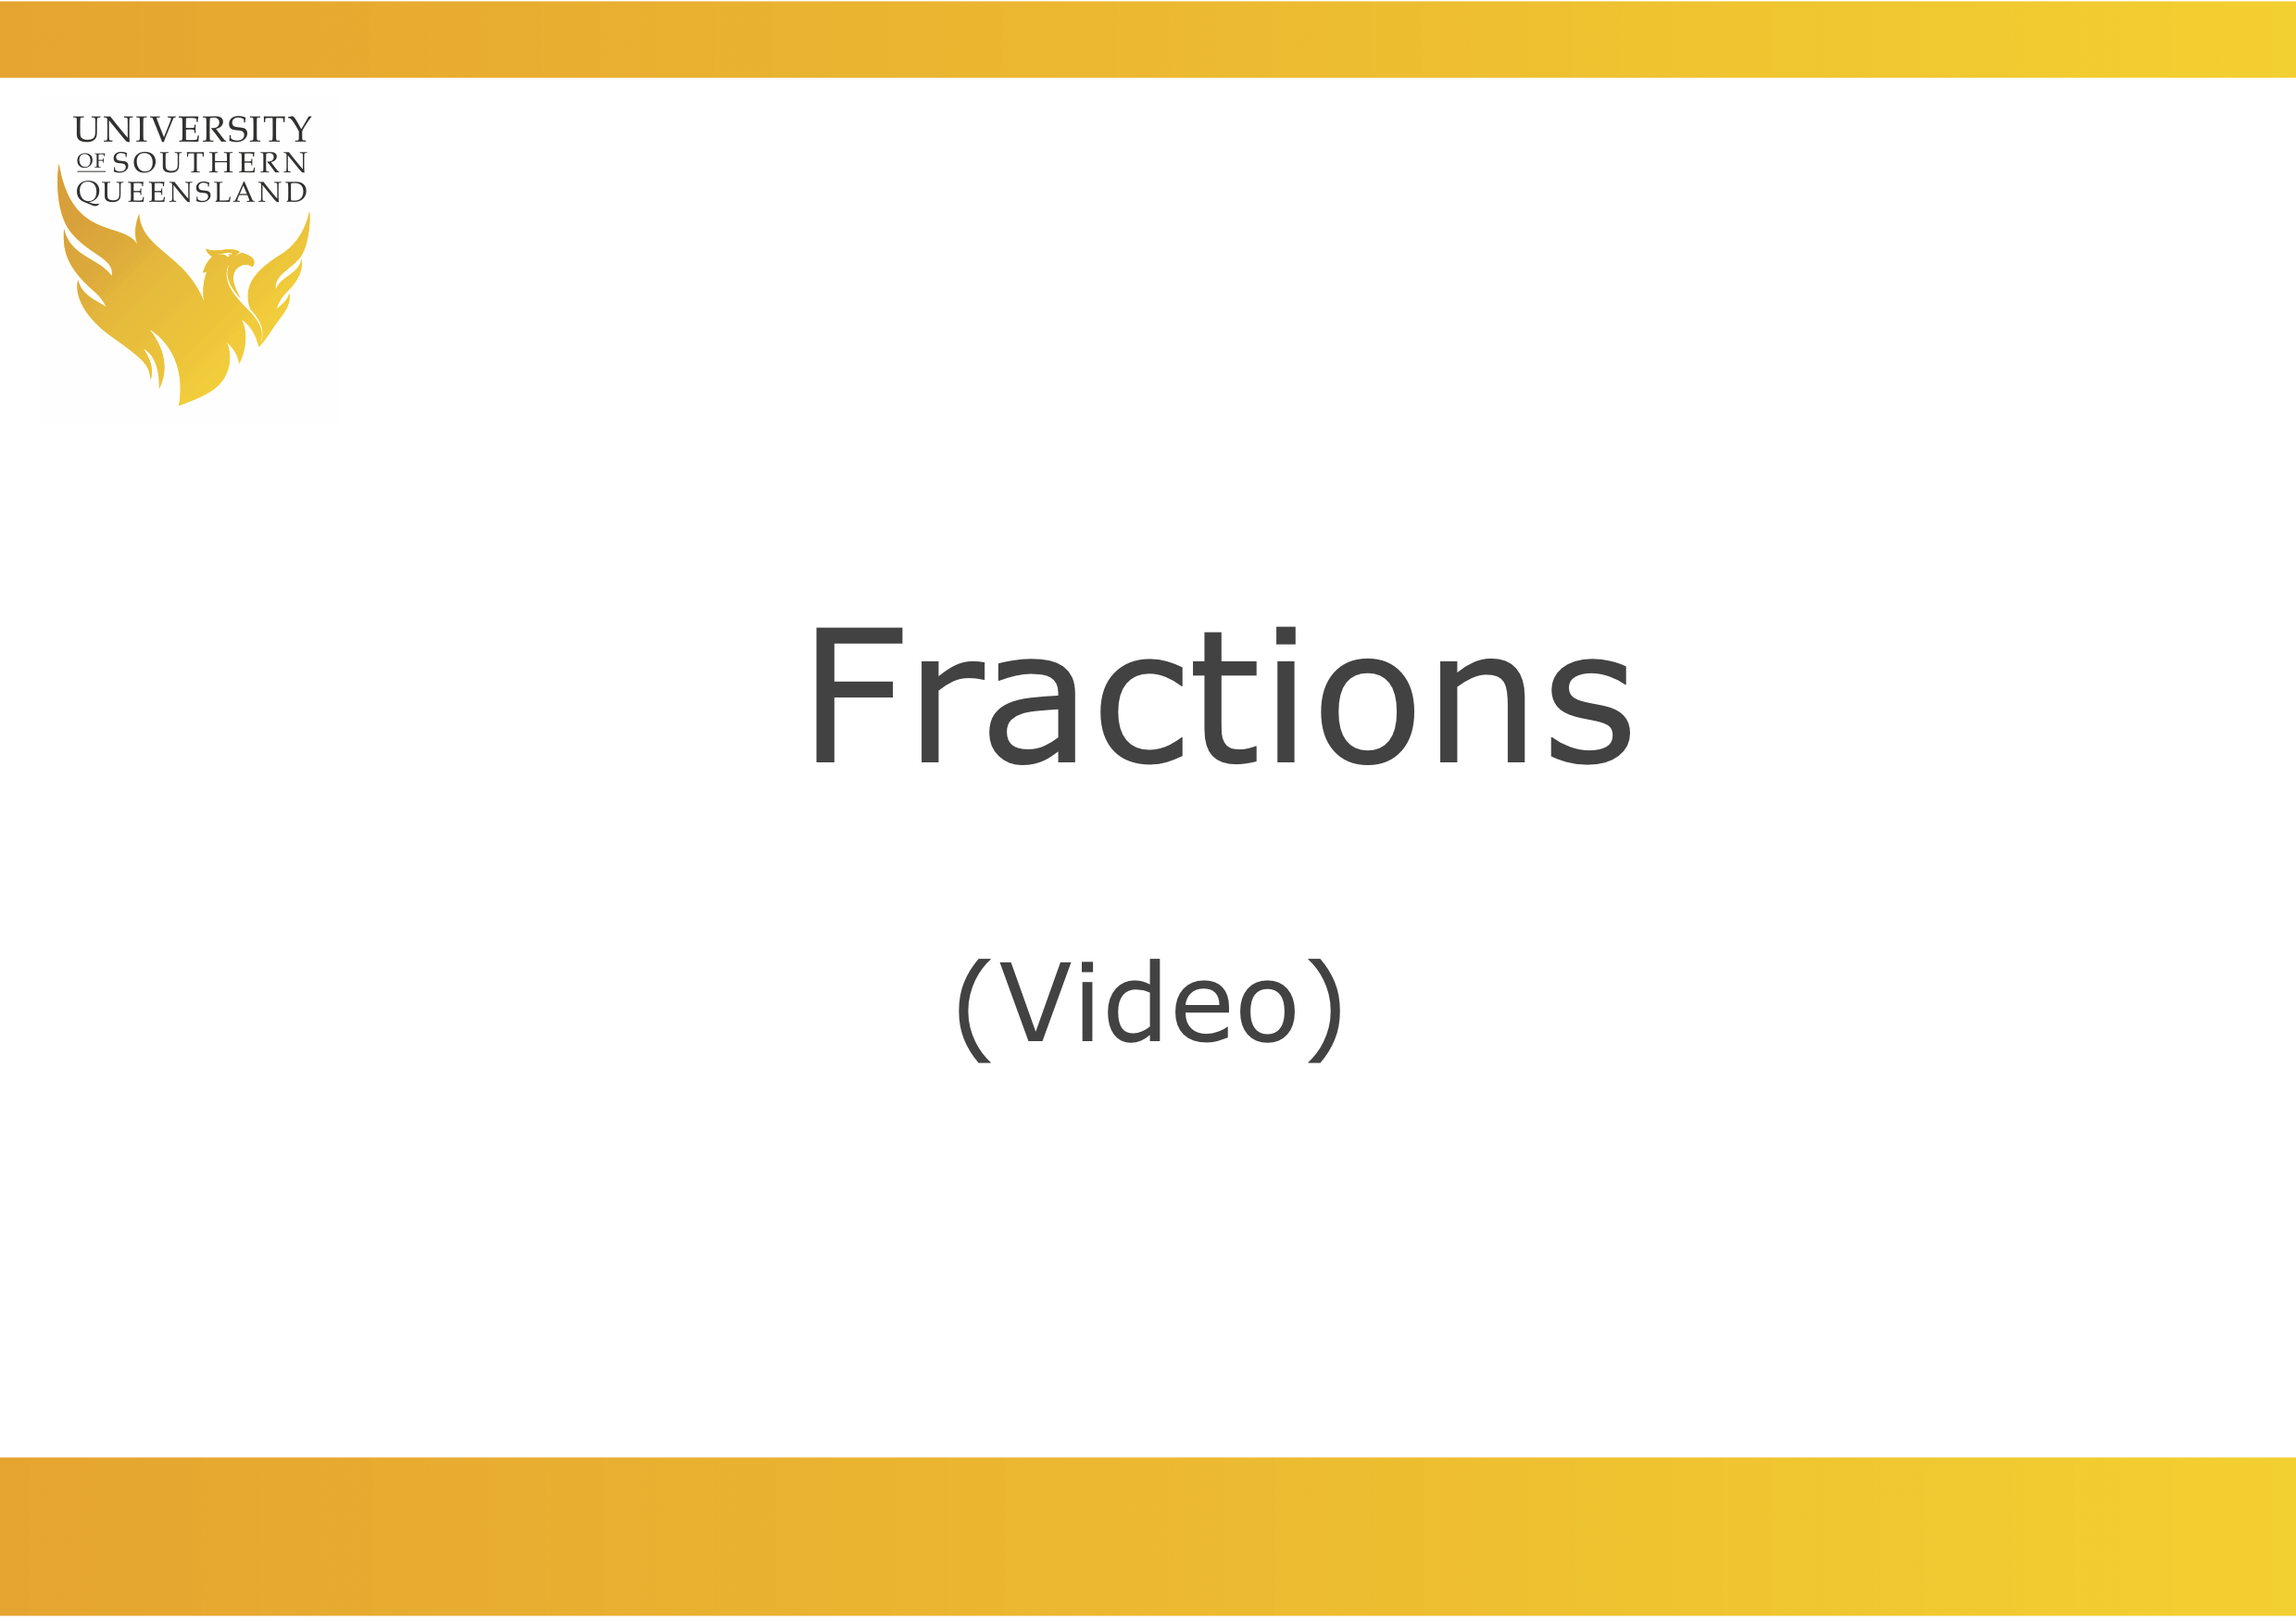 Link to video about fractions